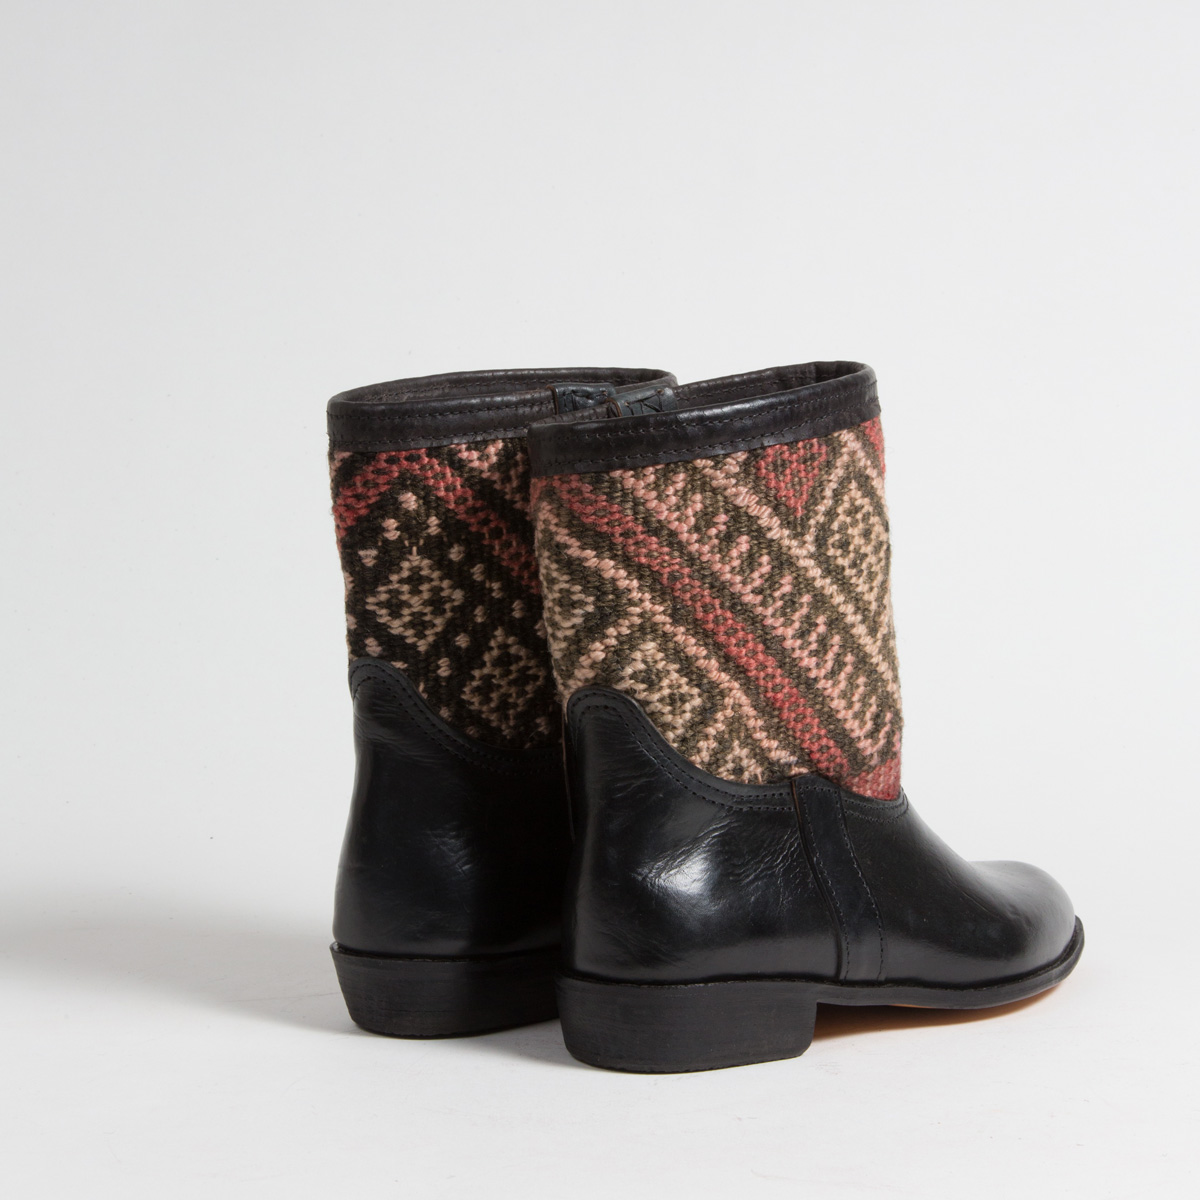 Bottines Kilim cuir mababouche artisanales (Réf. RPN15-39)